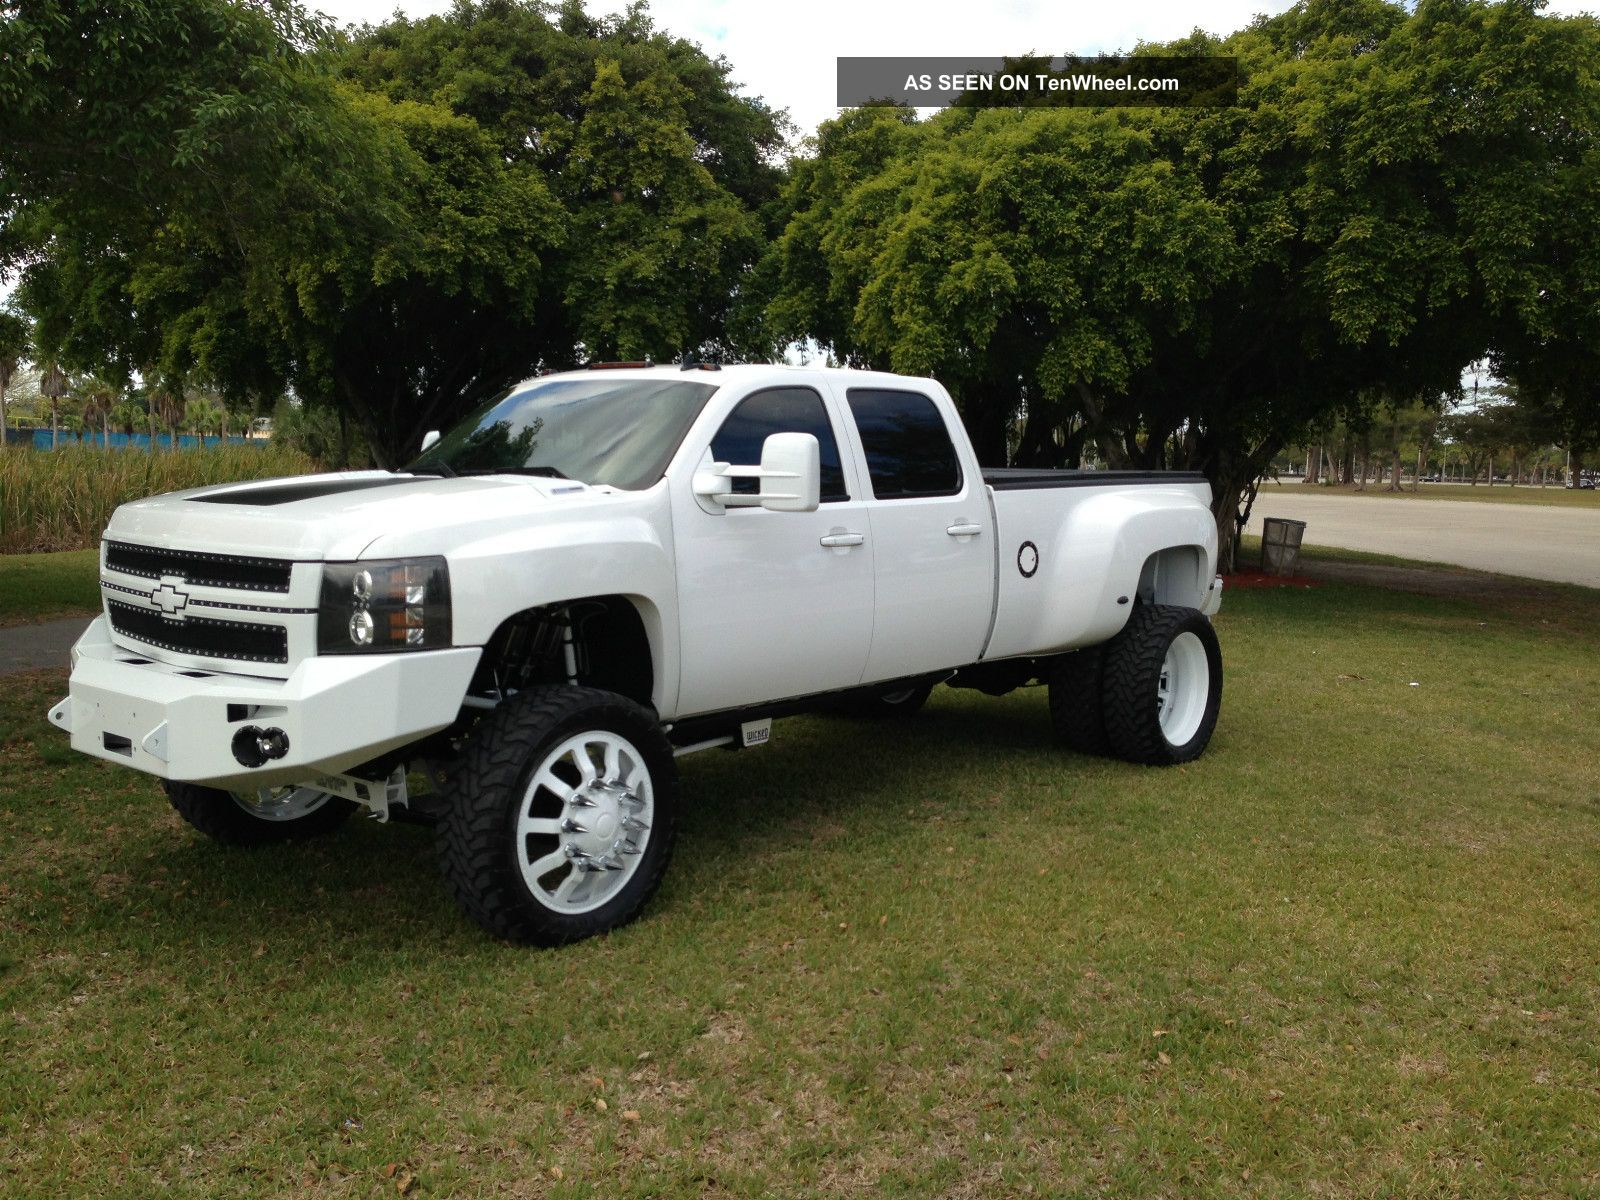 2008 chevrolet silverado 3500 hd lt extended cab pickup 4 door 6 6l. Black Bedroom Furniture Sets. Home Design Ideas